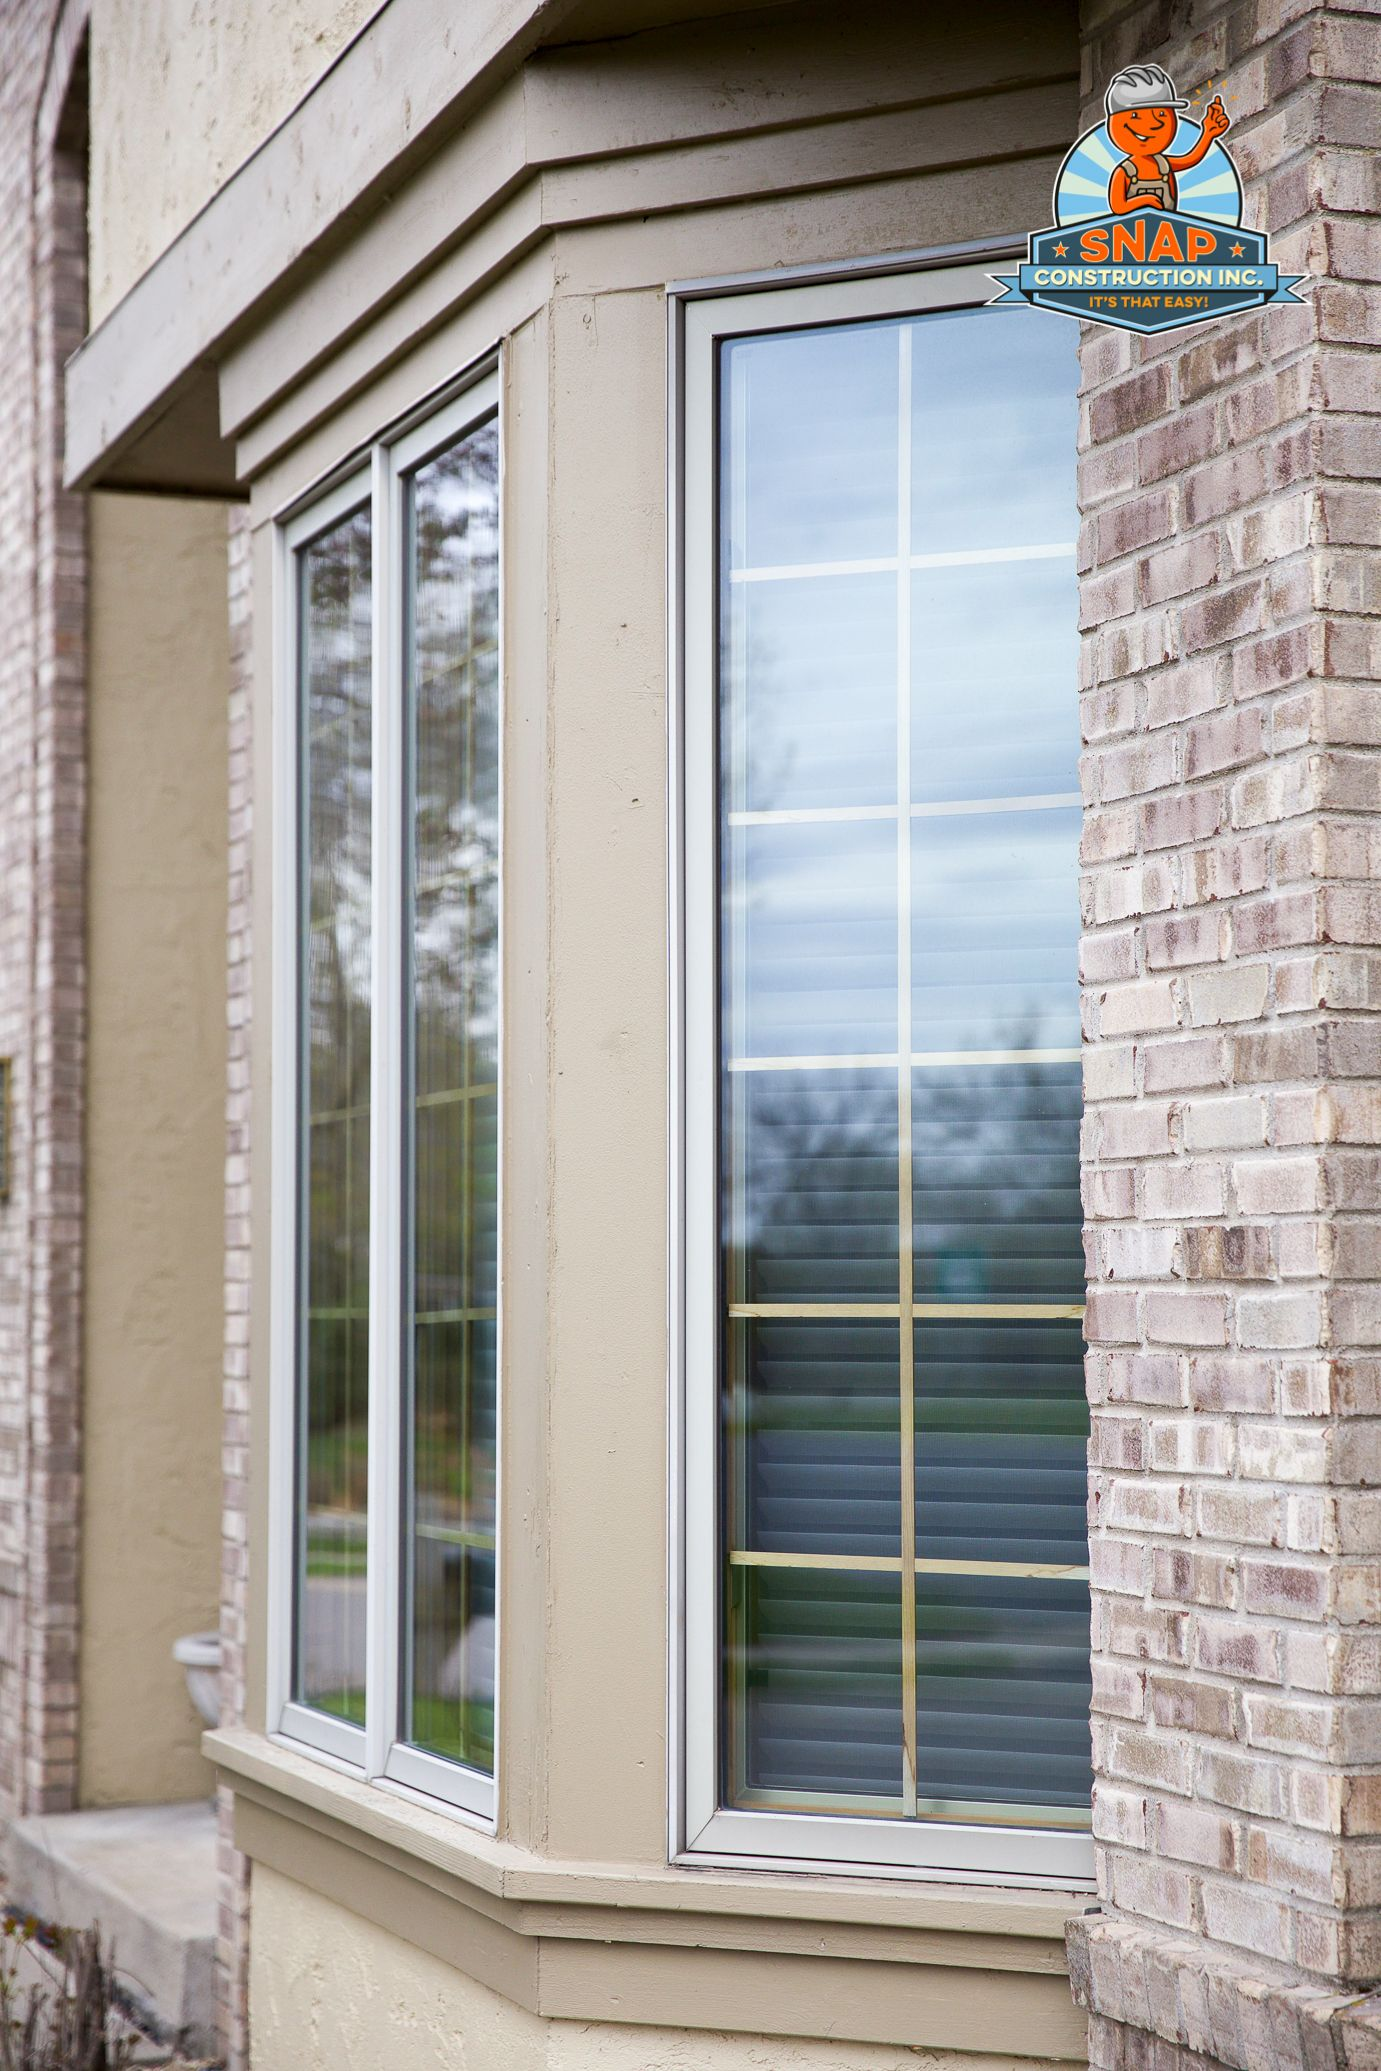 Minneapolis Roofing Contractor Mn With Images Roofing Contractors Affordable Roofing Windows